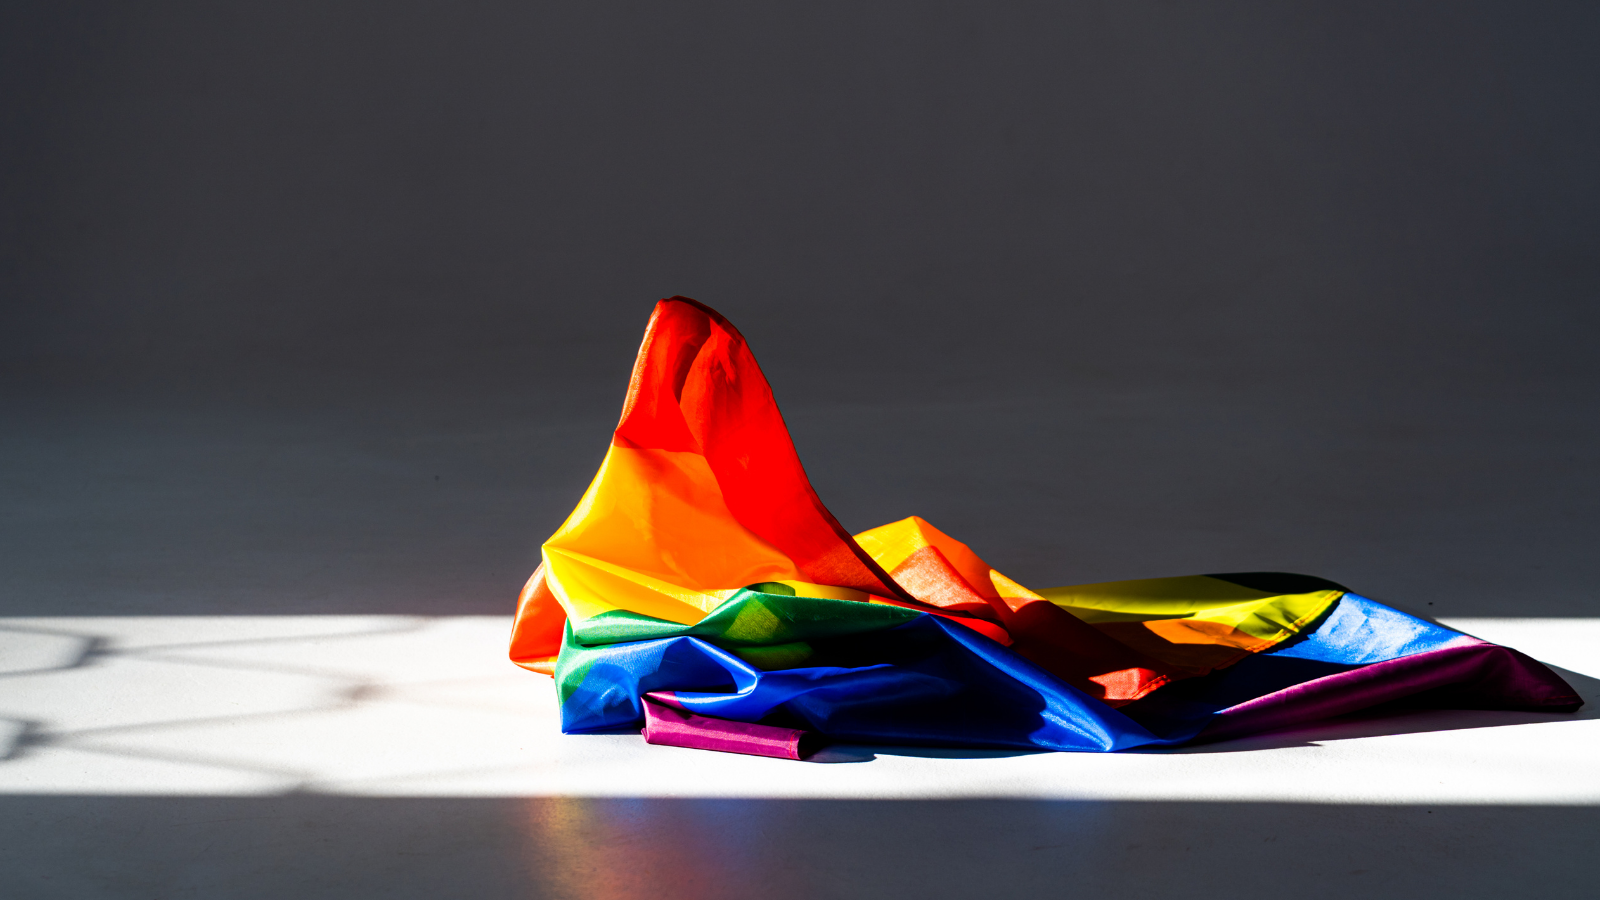 5 reasons why businesses should embrace being both a visible and proactive LGBTQ+ ally